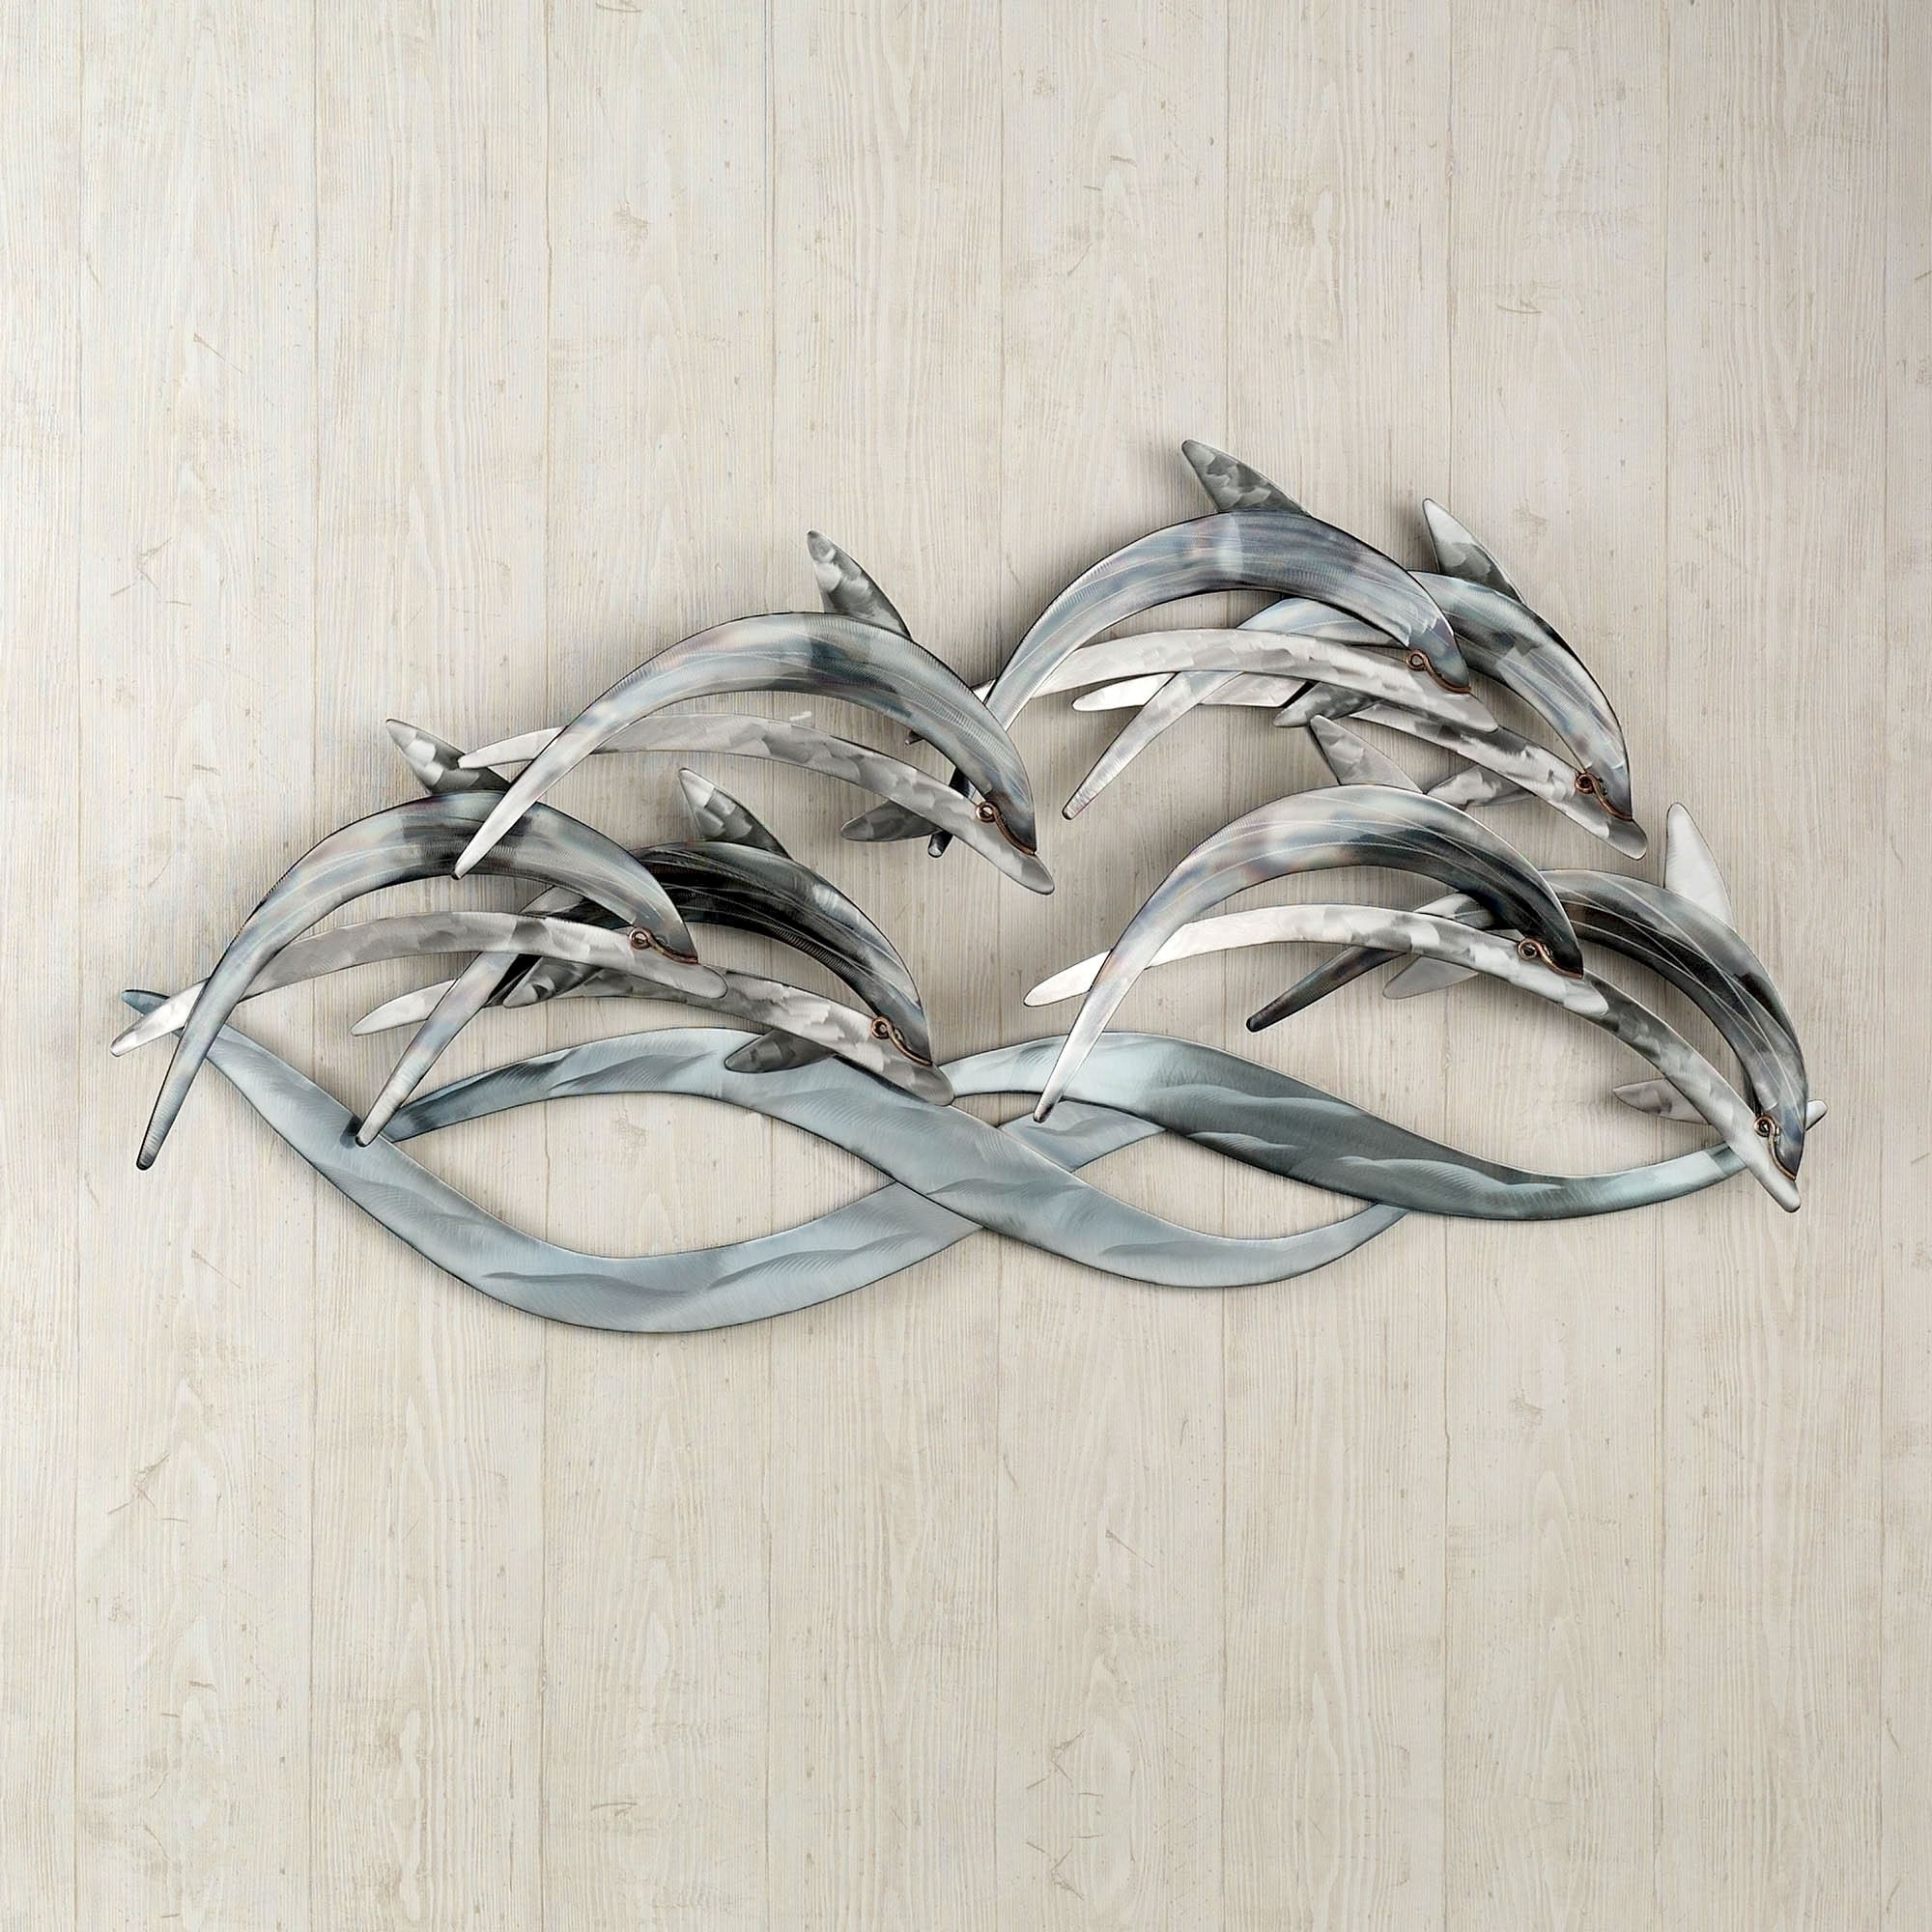 Newest Wave Dancers Dolphin Stainless Steel Wall Sculpture In Large Metal Wall Art Sculptures (Gallery 9 of 15)